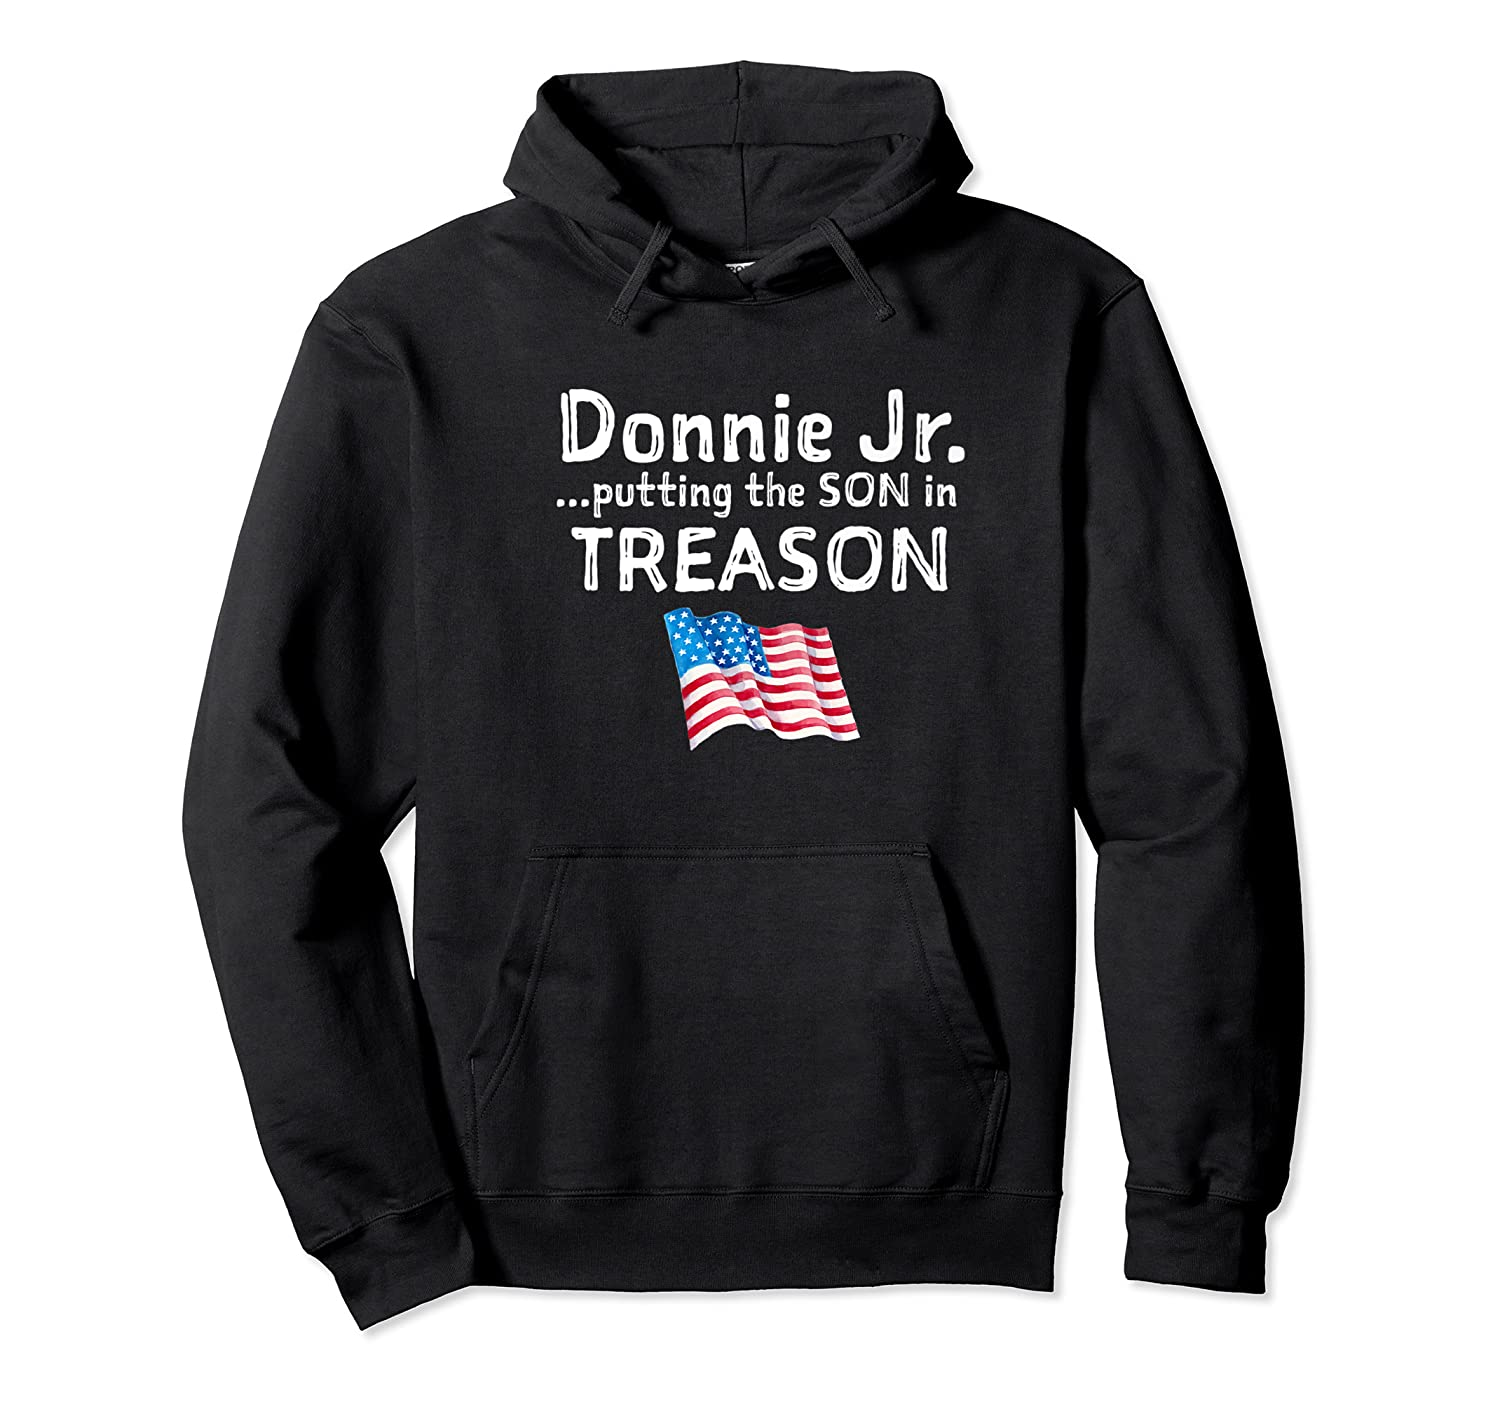 Donnie Jr Putting The Son In Treason Anti Trump Shirts Unisex Pullover Hoodie